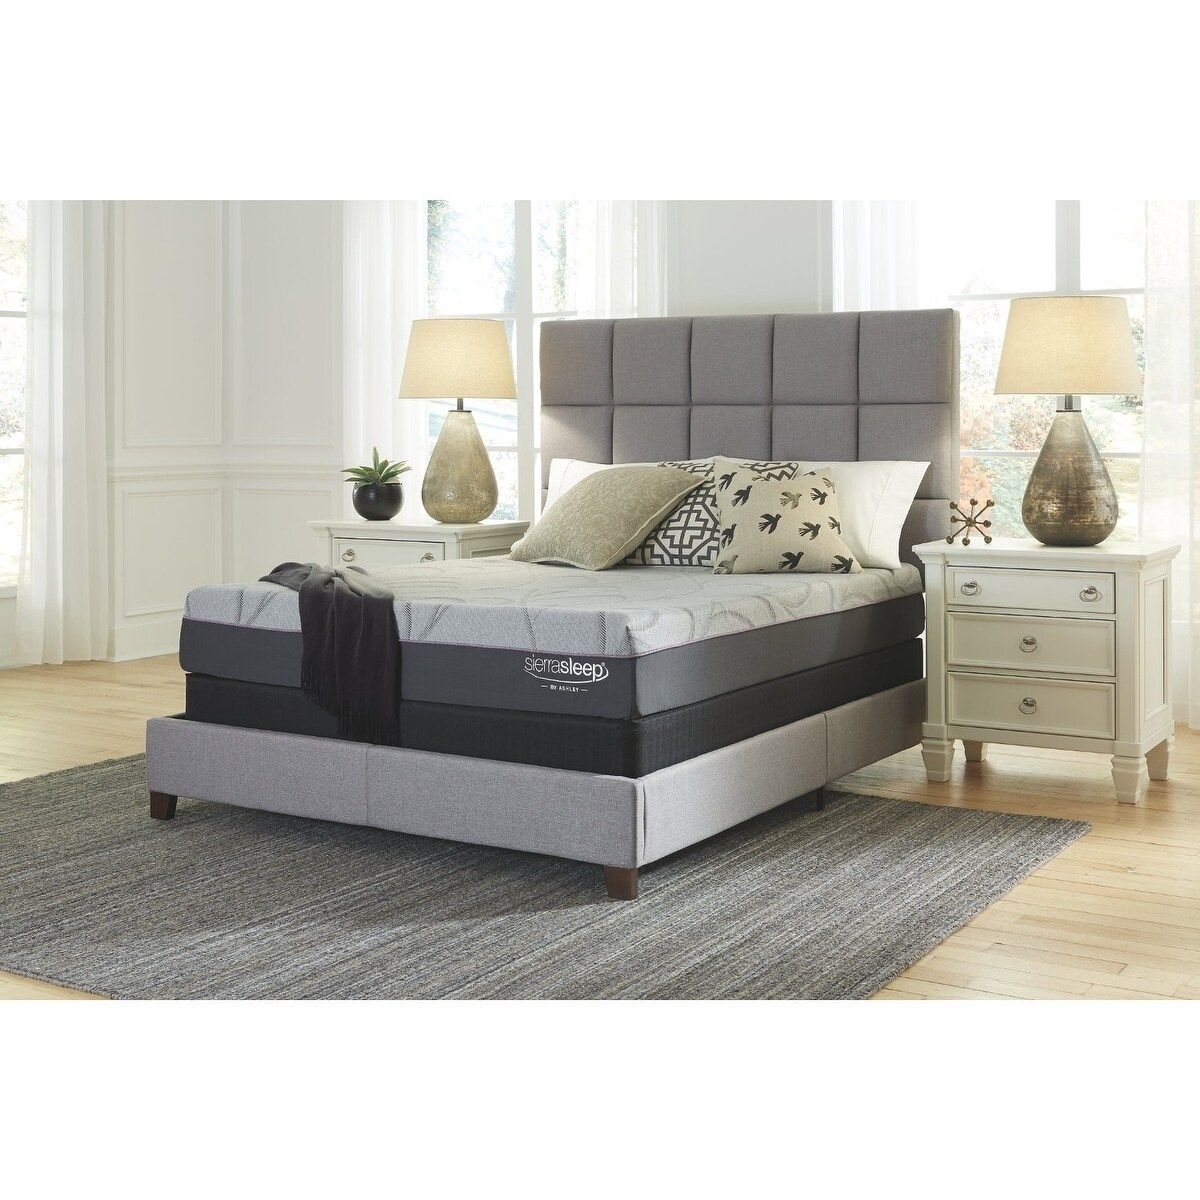 Signature Design By Ashley Palisades 10 Inch Foam Mattress With Head Foot Model Better Adjustable Bed Frame King Black Adjustable Beds Adjustable Bed Frame Under Bed Lighting